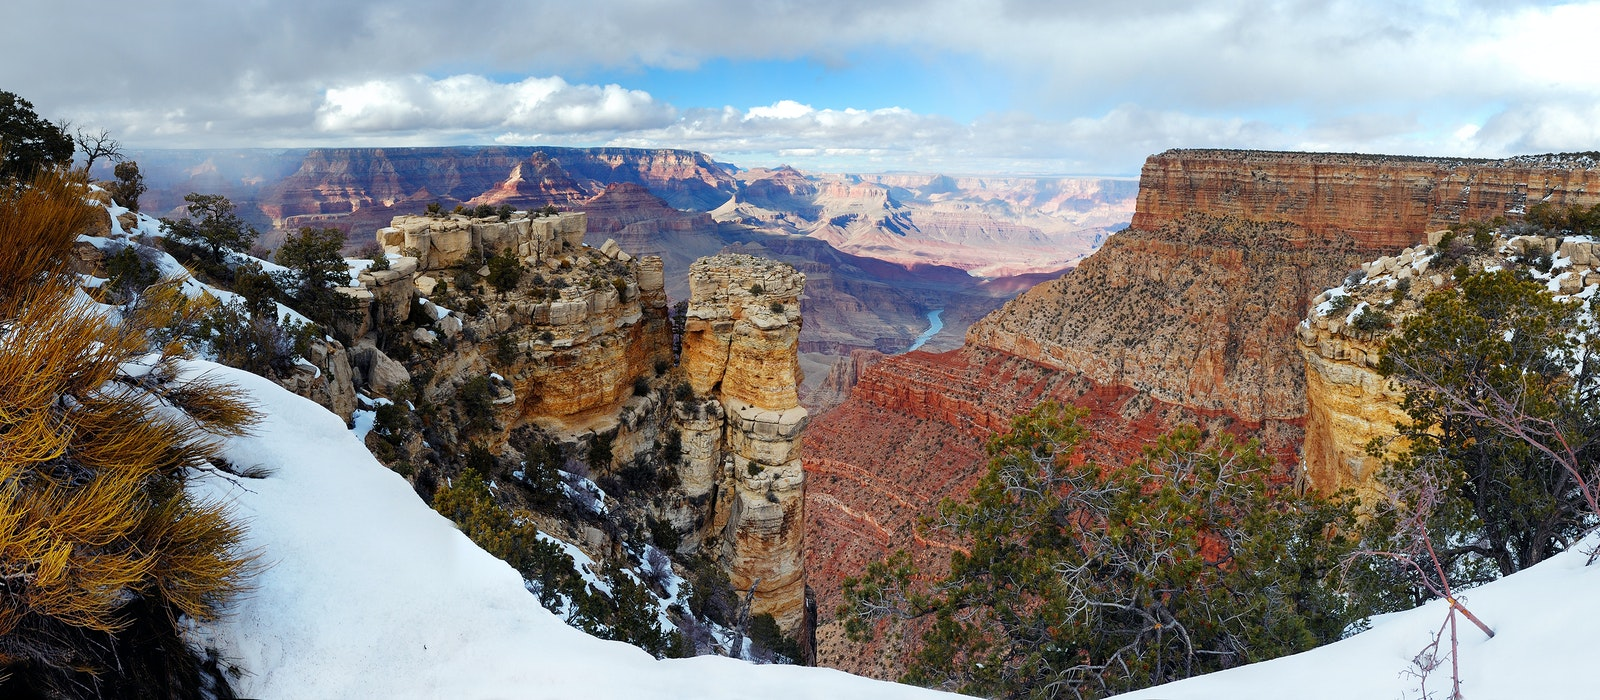 During winter, snow often dusts the red walls of Grand Canyon National Park.